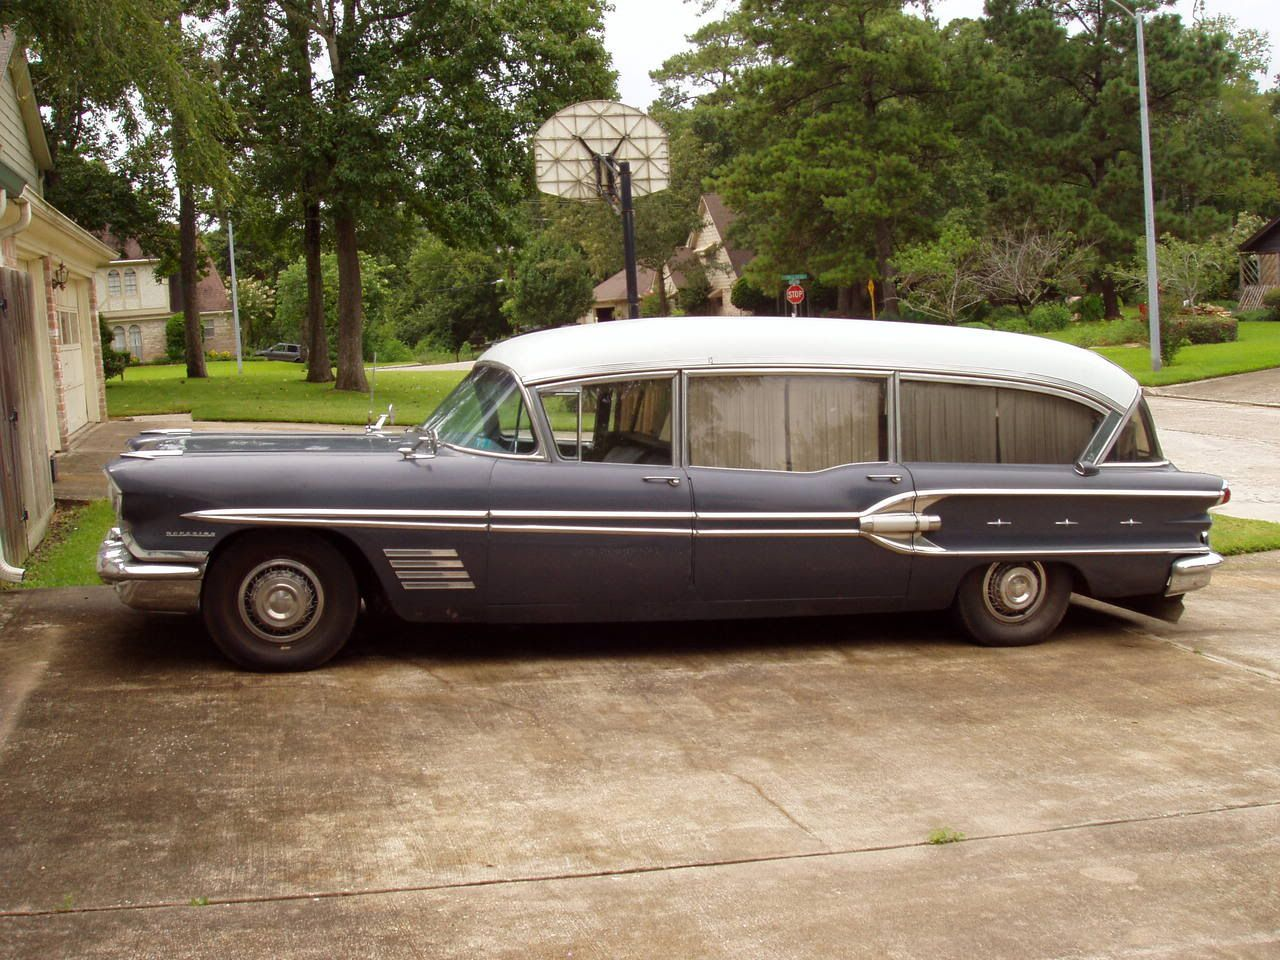 Pin By Toby Singer On Hearses Hearse Station Wagon Cars Flower Car